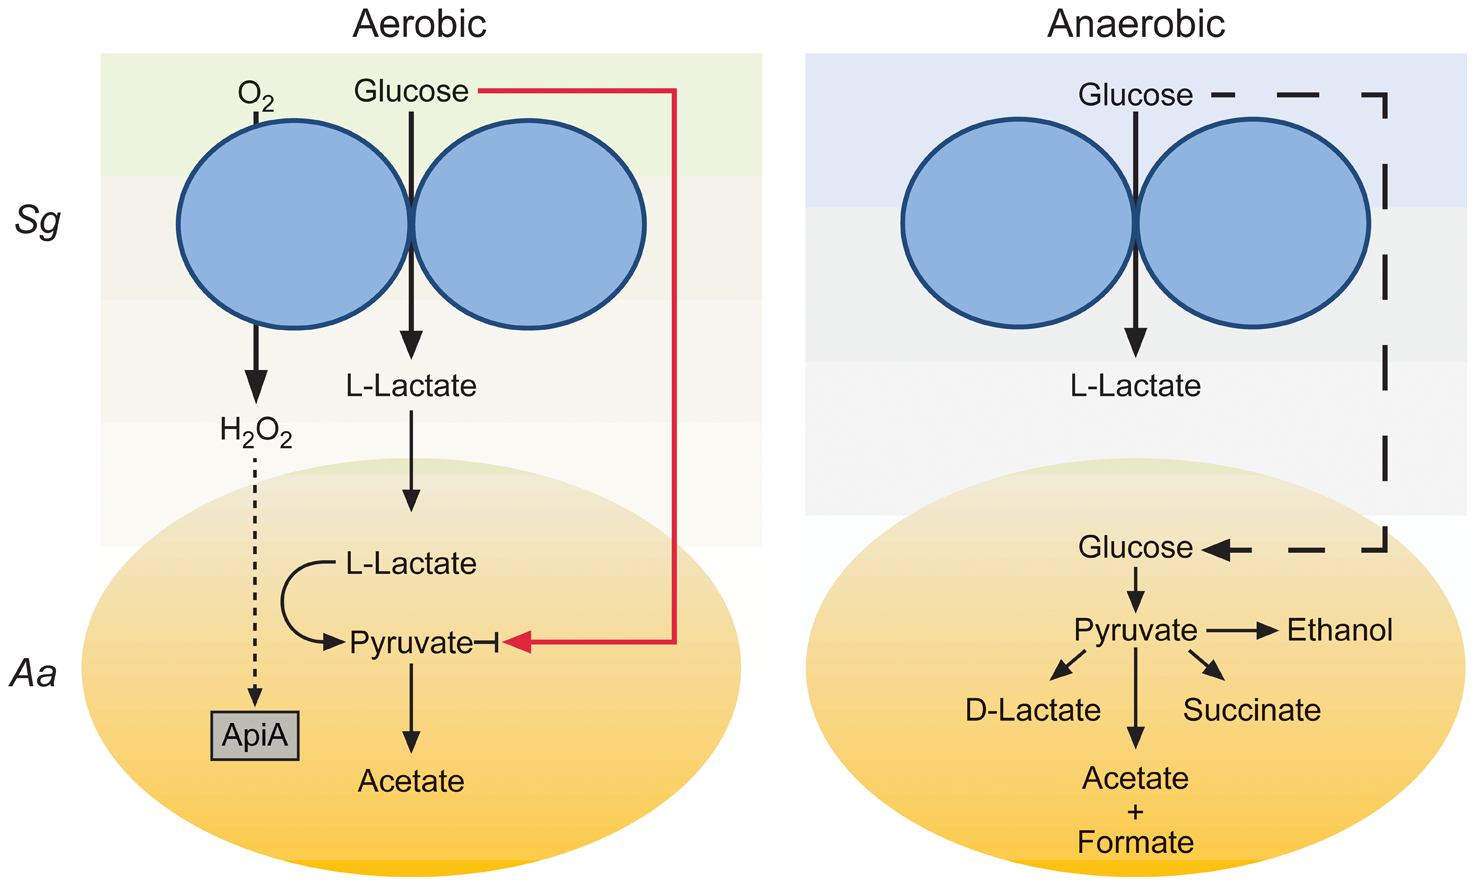 Model for enhanced persistence of <i>A. actinomycetemcomitans</i> during aerobic co-culture with <i>S. gordonii</i>.